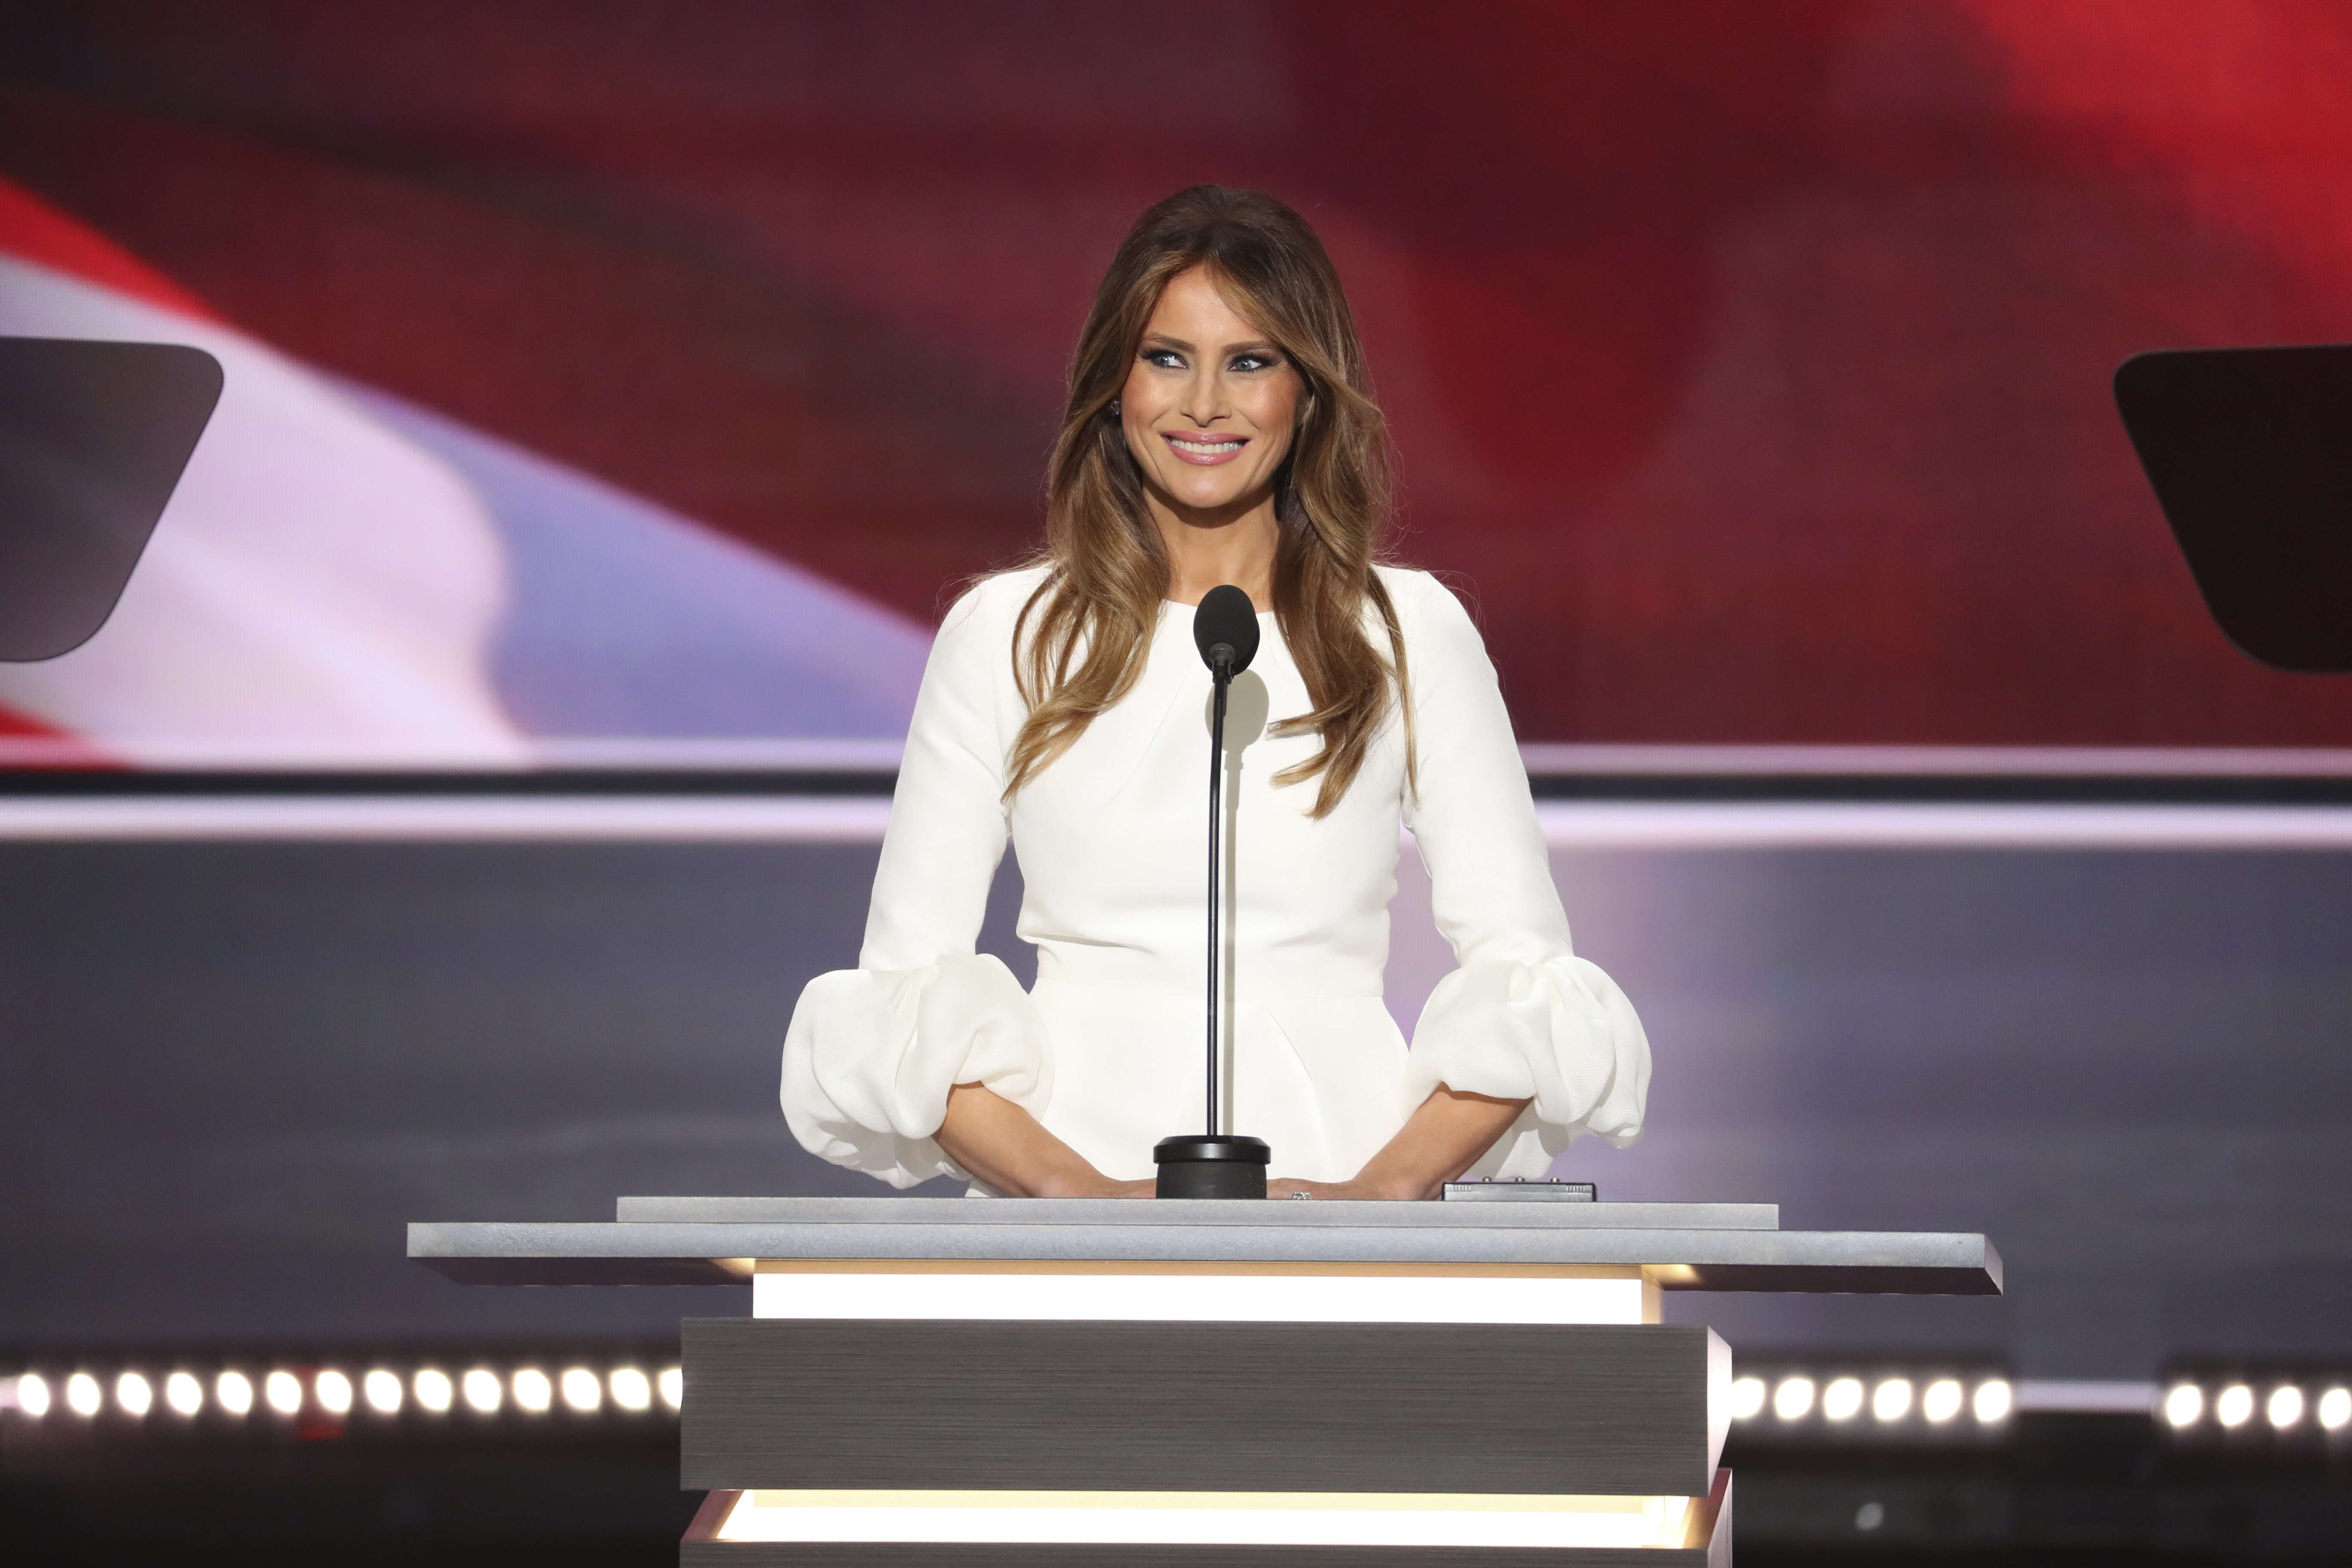 Melania Trump will recover from surgery at Walter Reed National Military Medical Center this week. (New York Times)